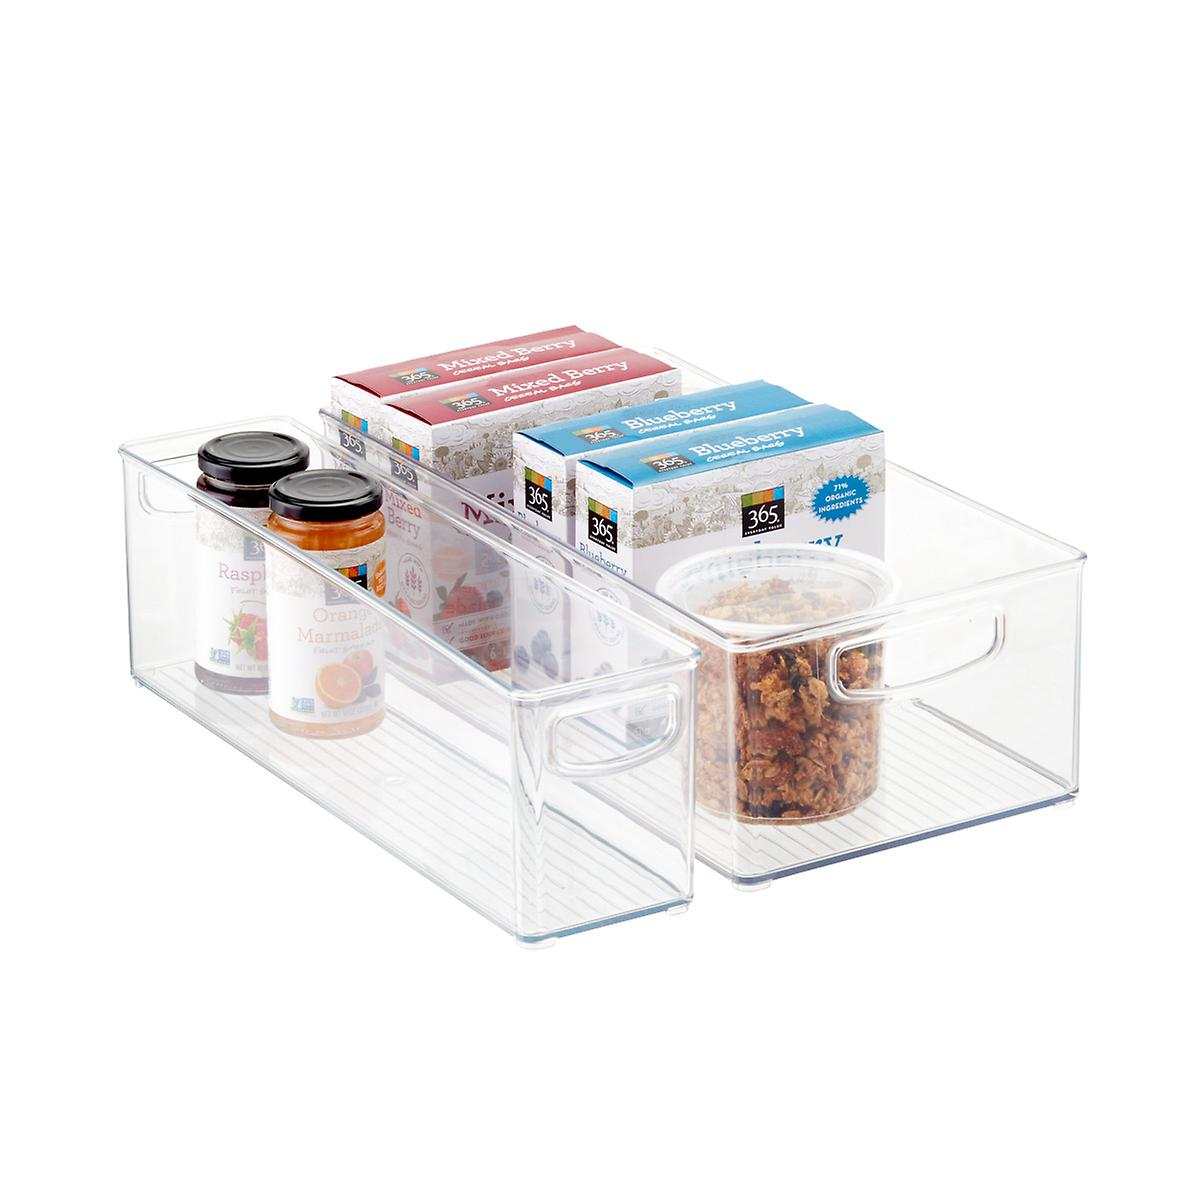 iDesign Linus Deep Drawer Bins